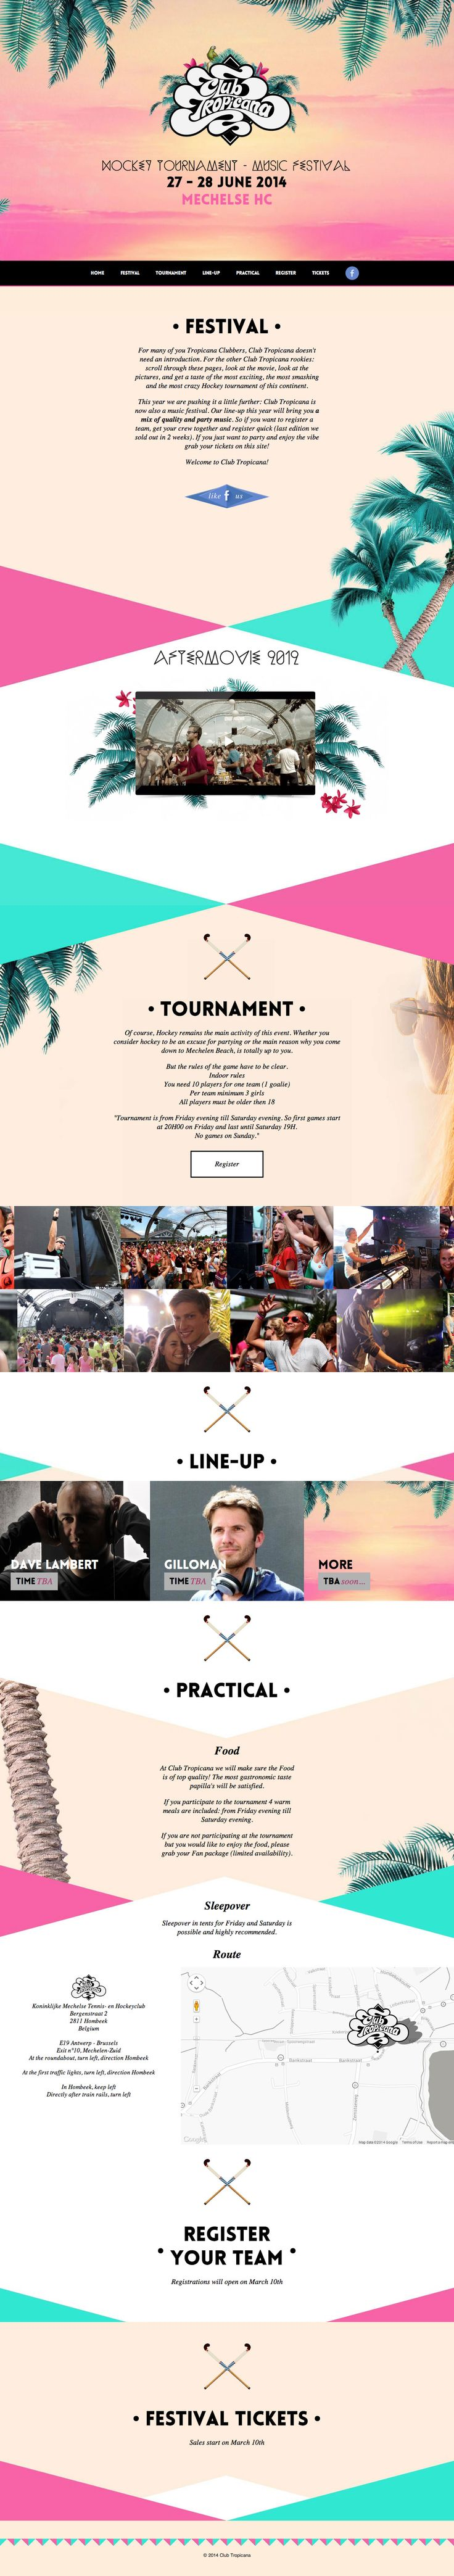 Unique Web Design, Club Tropicana via @saranyachn #WebDesign #Design